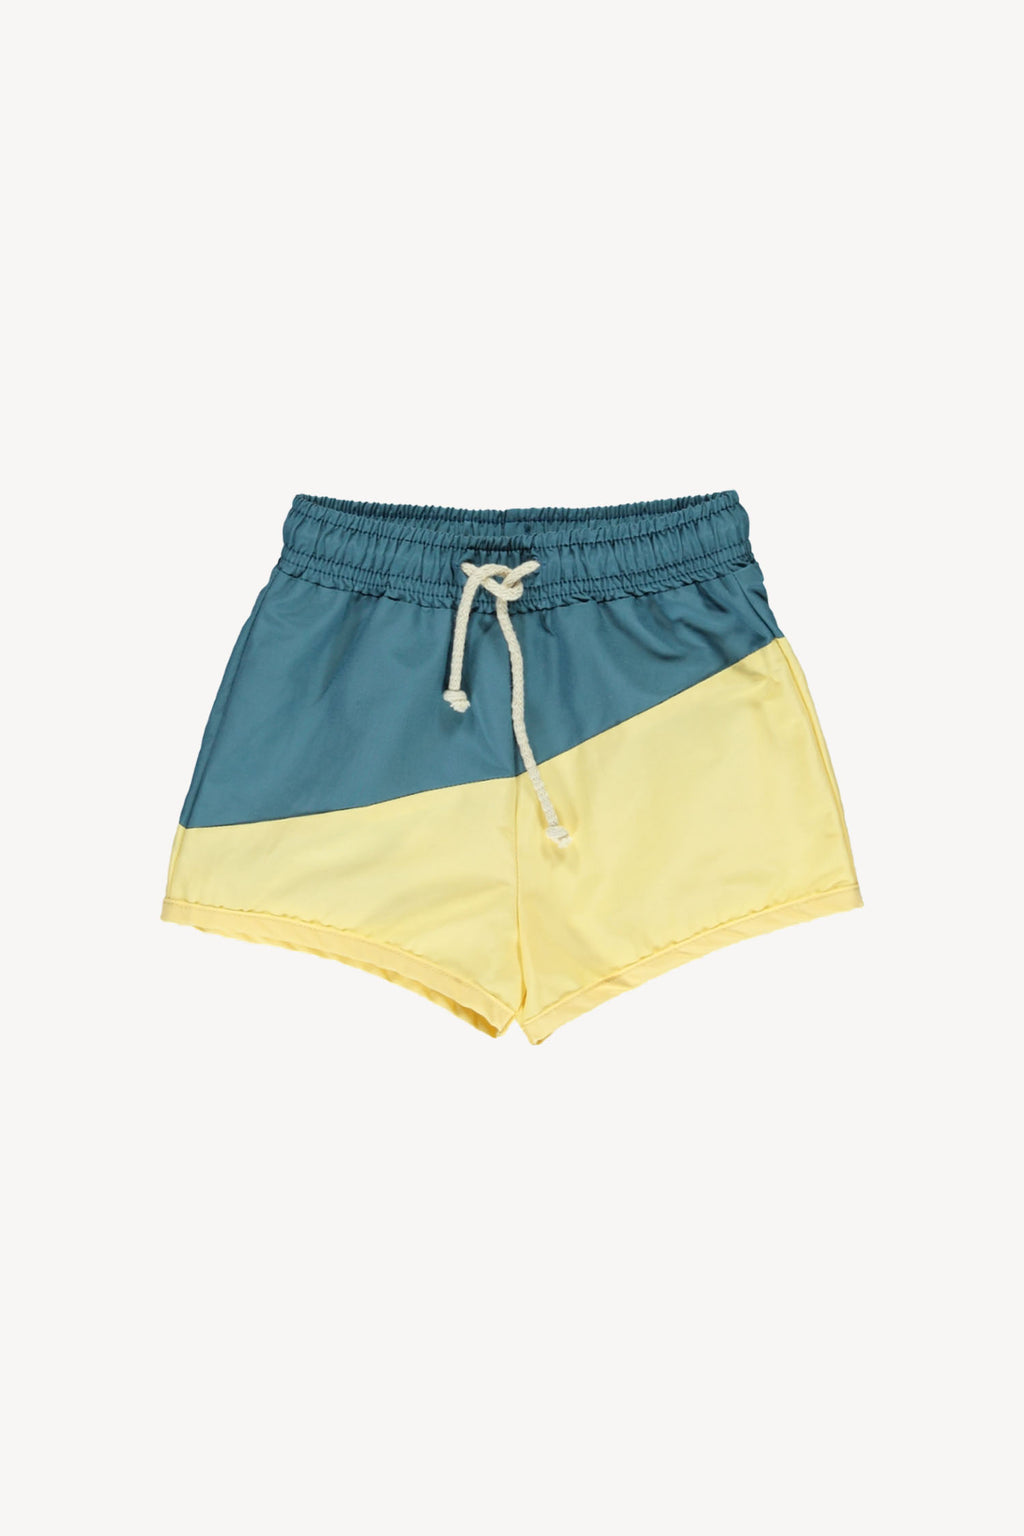 Fin and Vince - Board Shorts (Custard/Sky) - Only 12/18 & 10/11